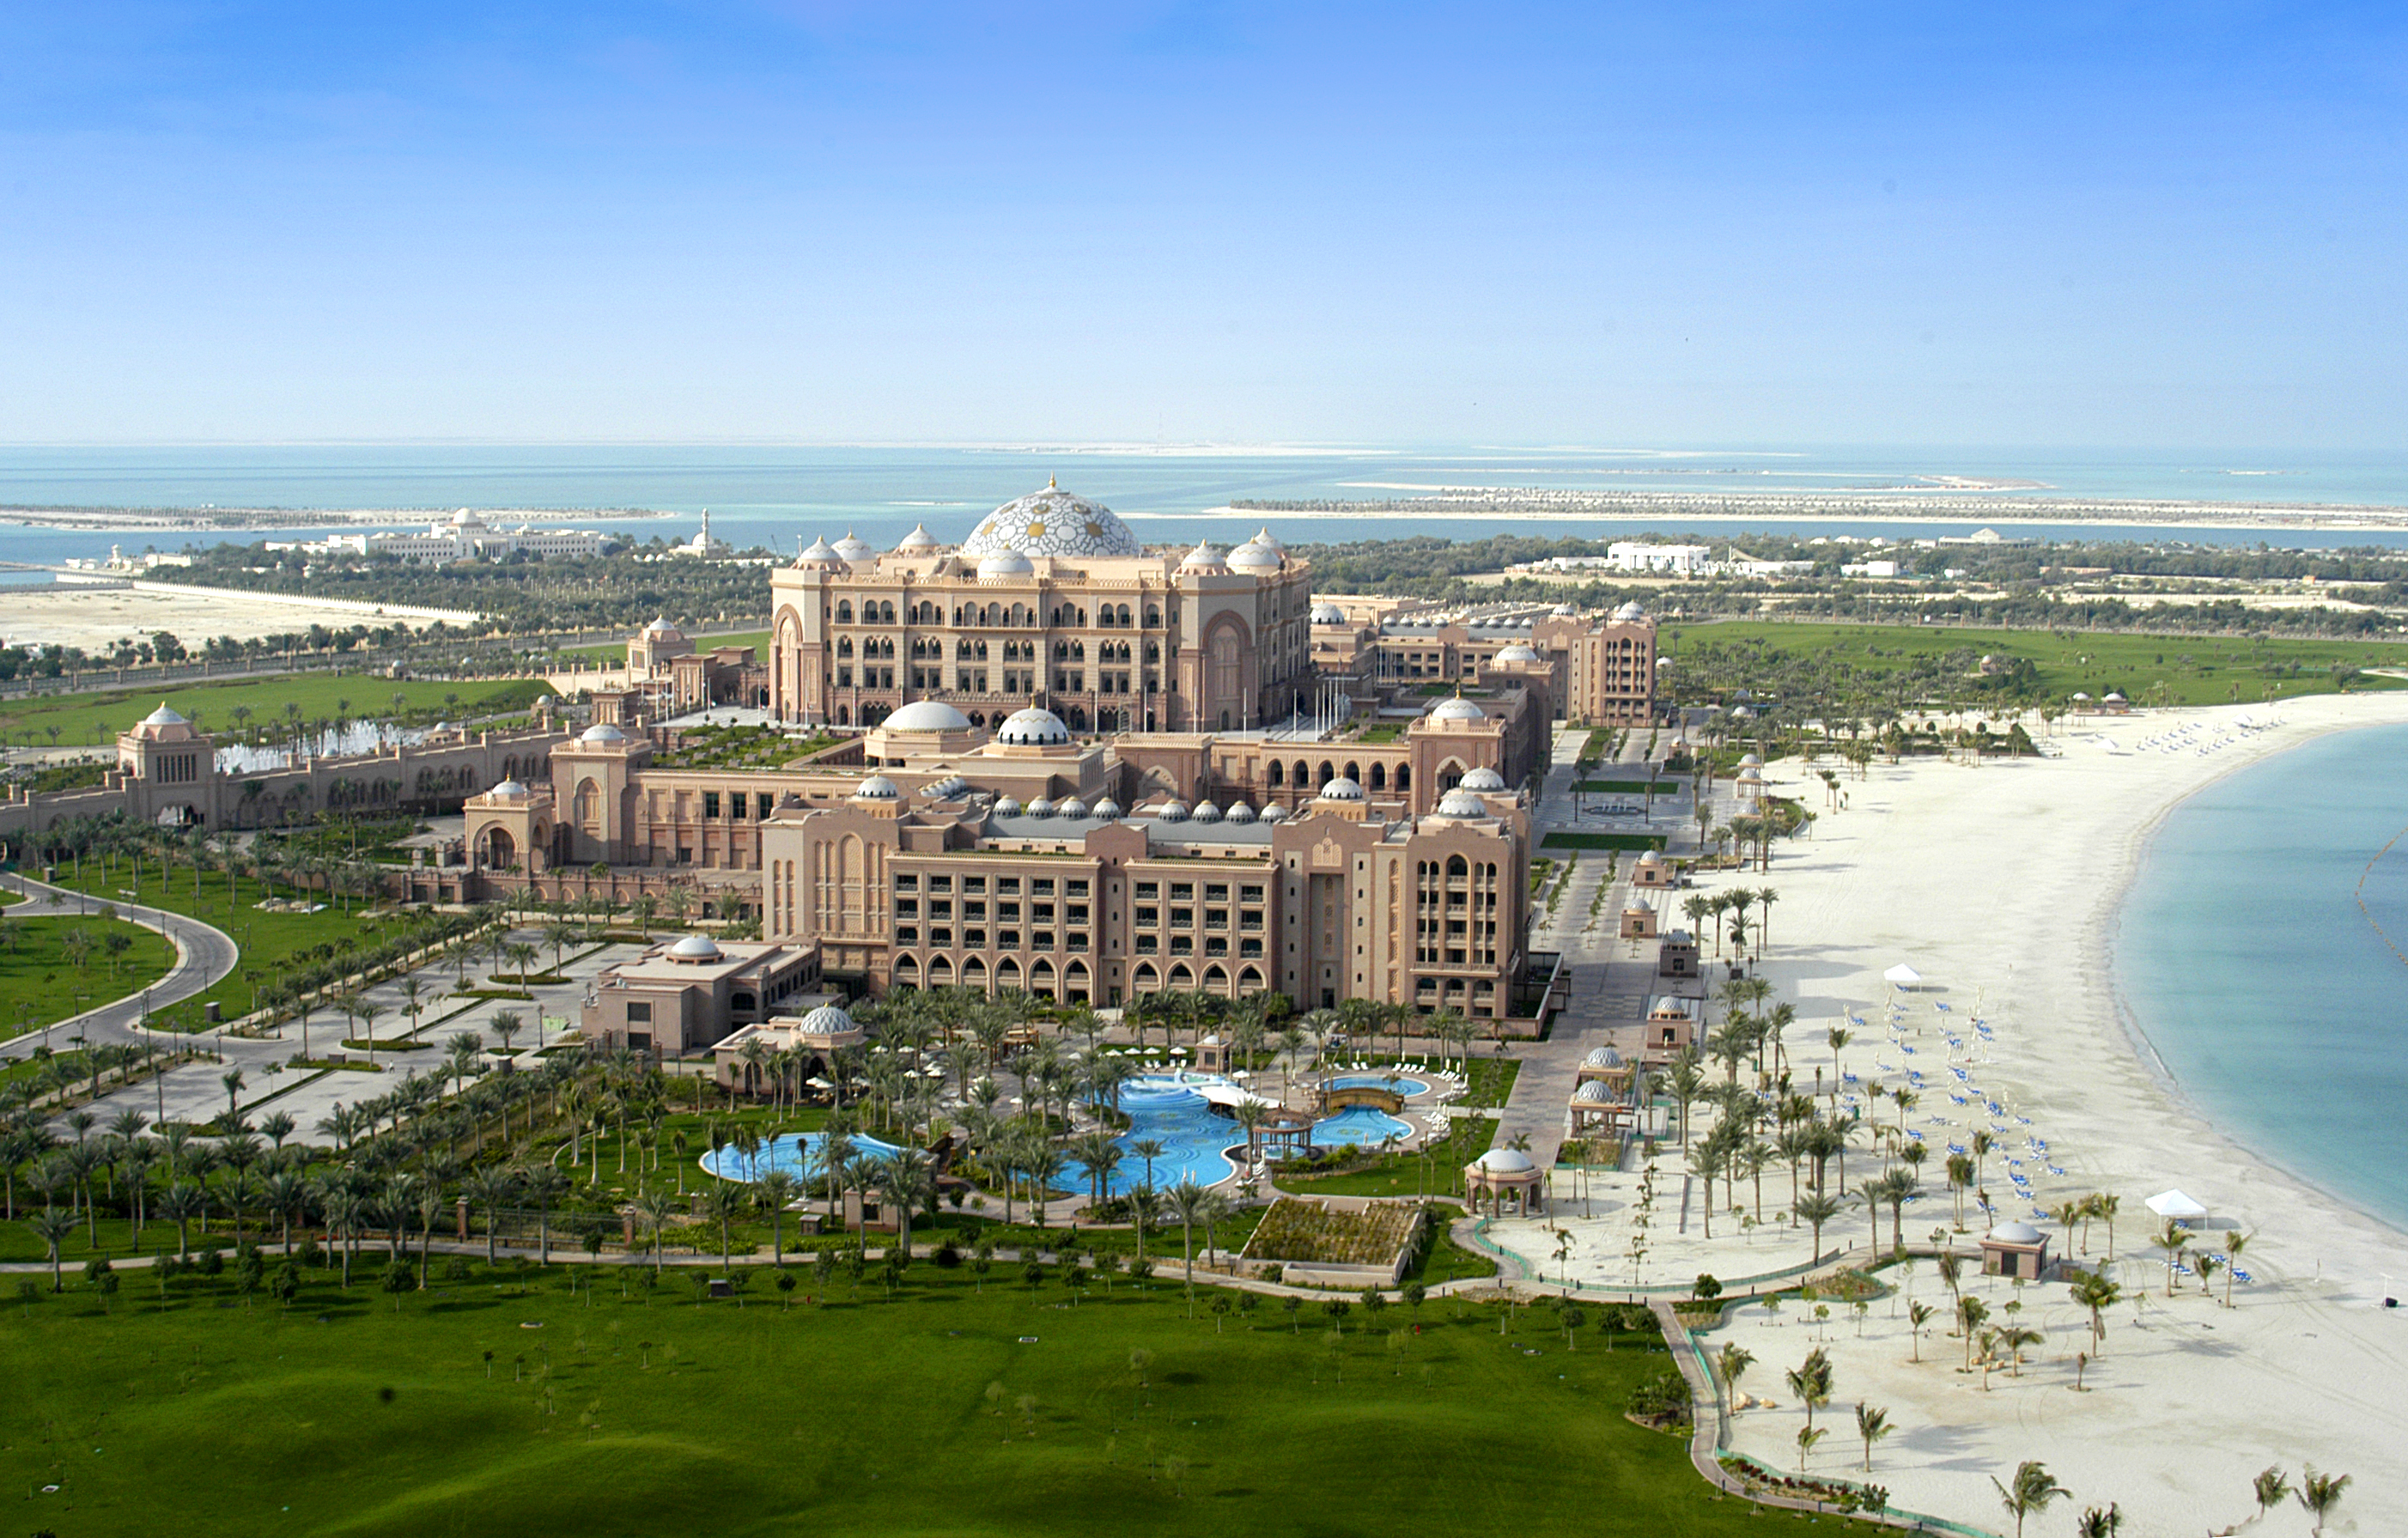 emirates-palace-day-view